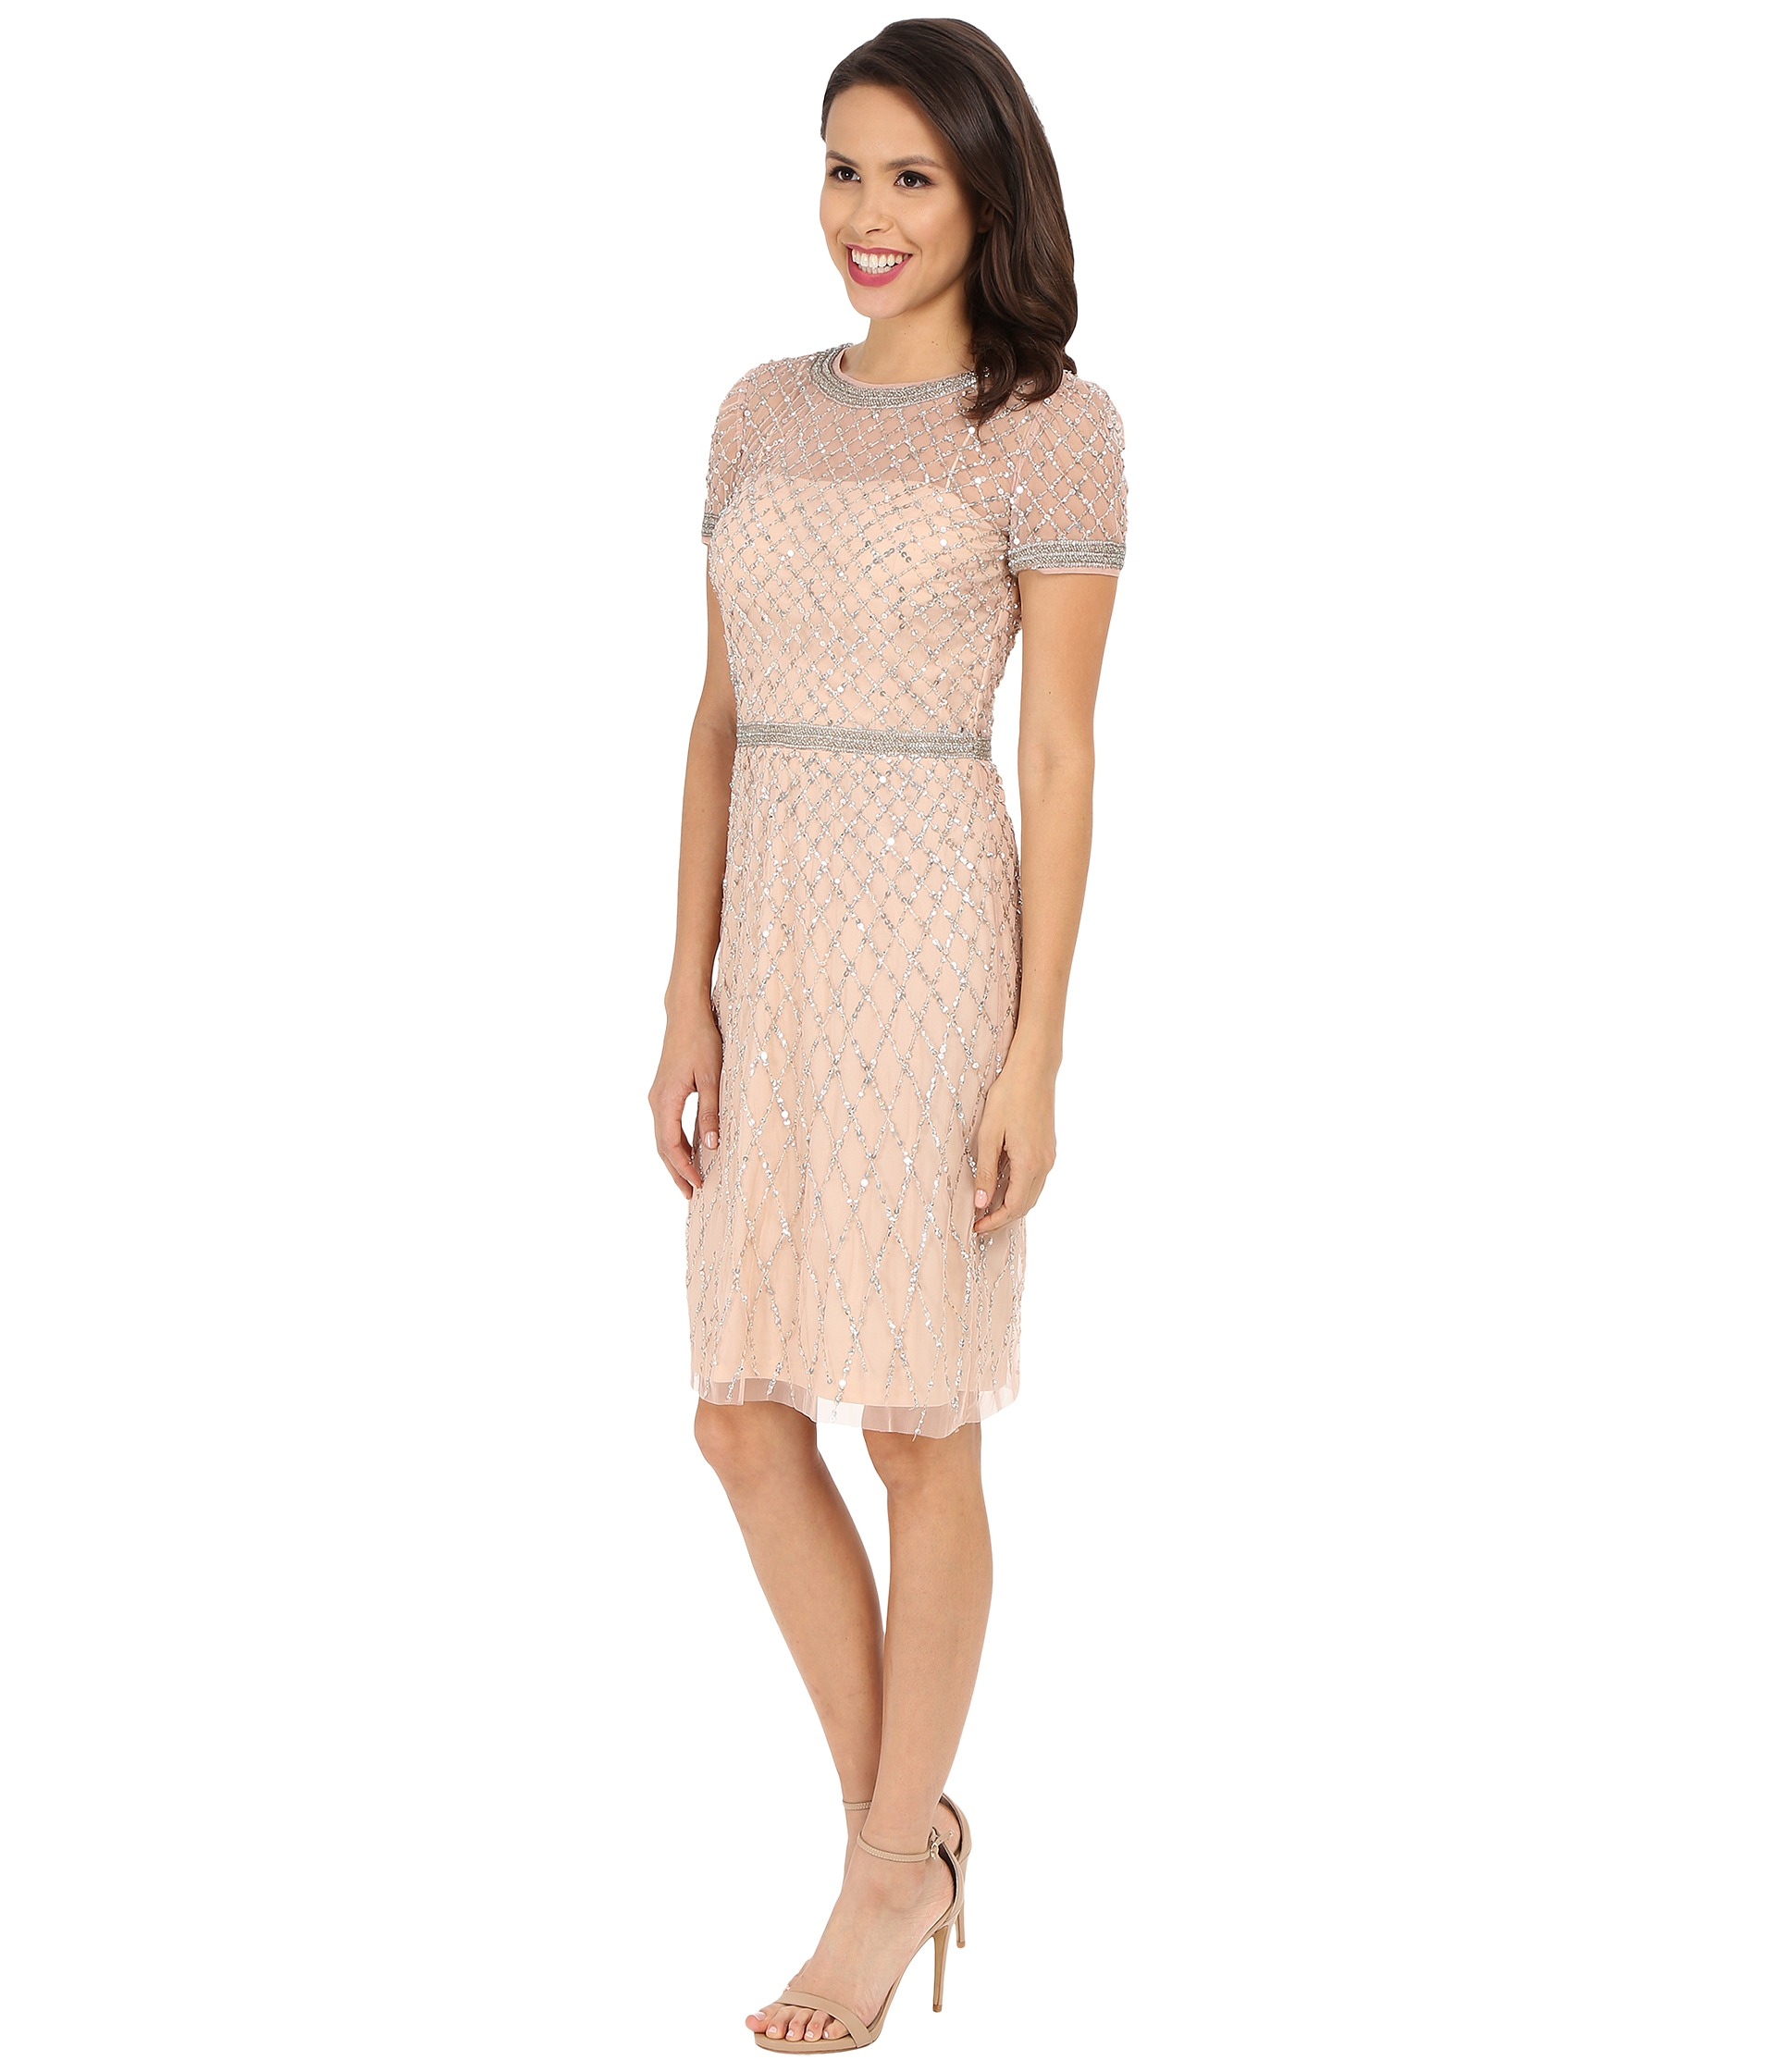 Lyst - Adrianna Papell Short Sleeve Fully Beaded Cocktail Dress in Pink